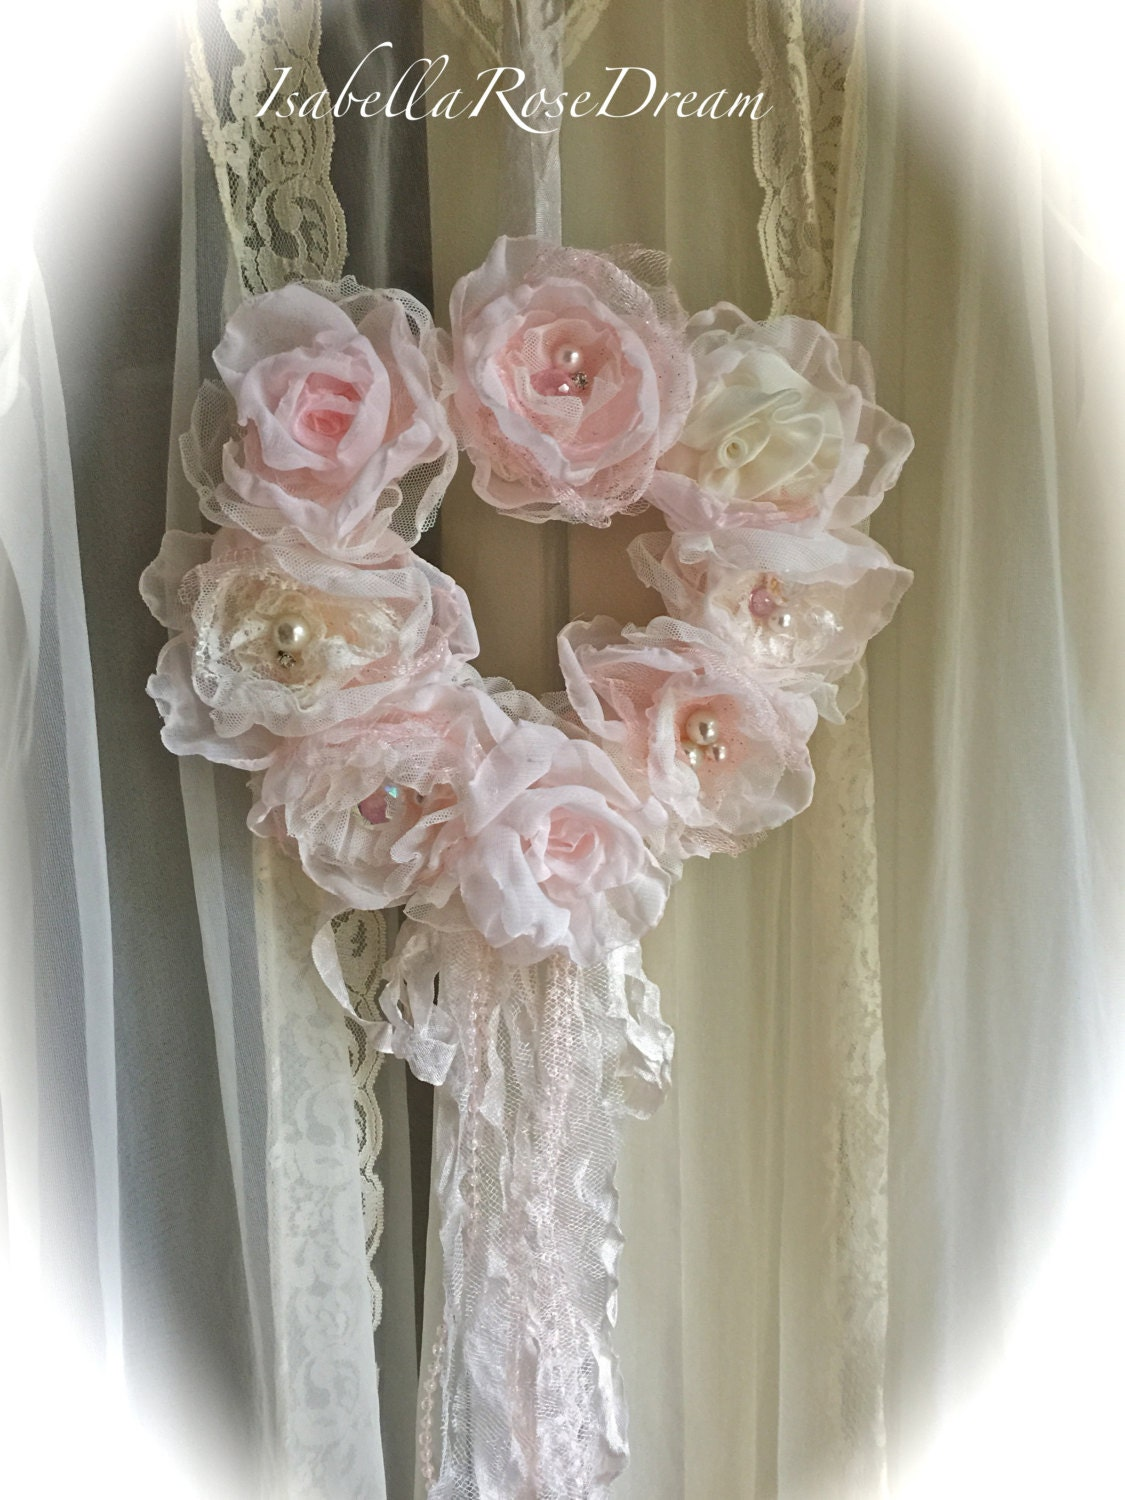 Shabby Chic Wreath Romantic Wreath Cottage Chic Decor Heart